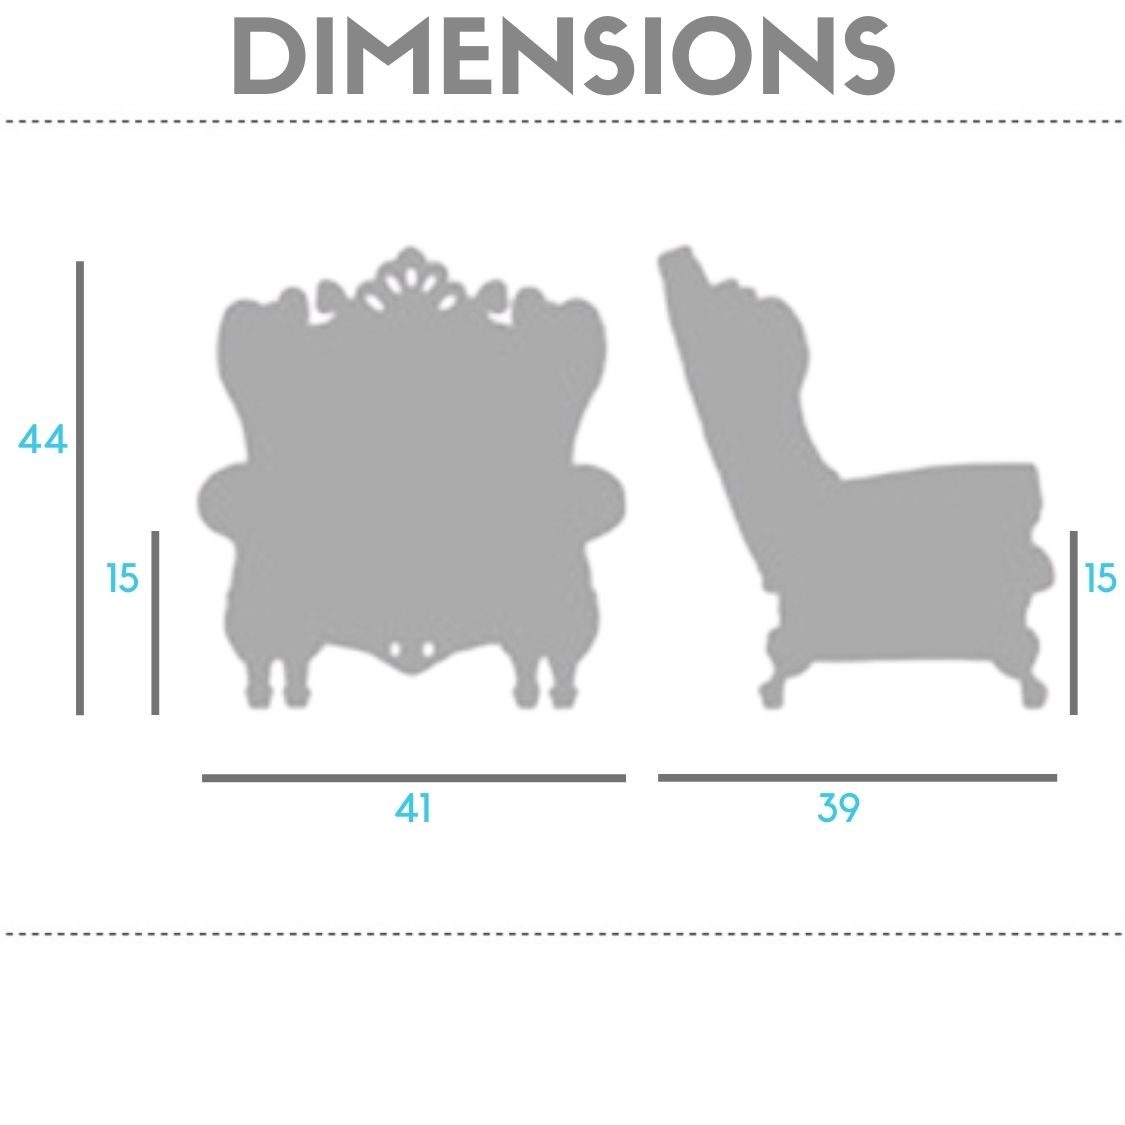 queen-of-love-chair-dimensions